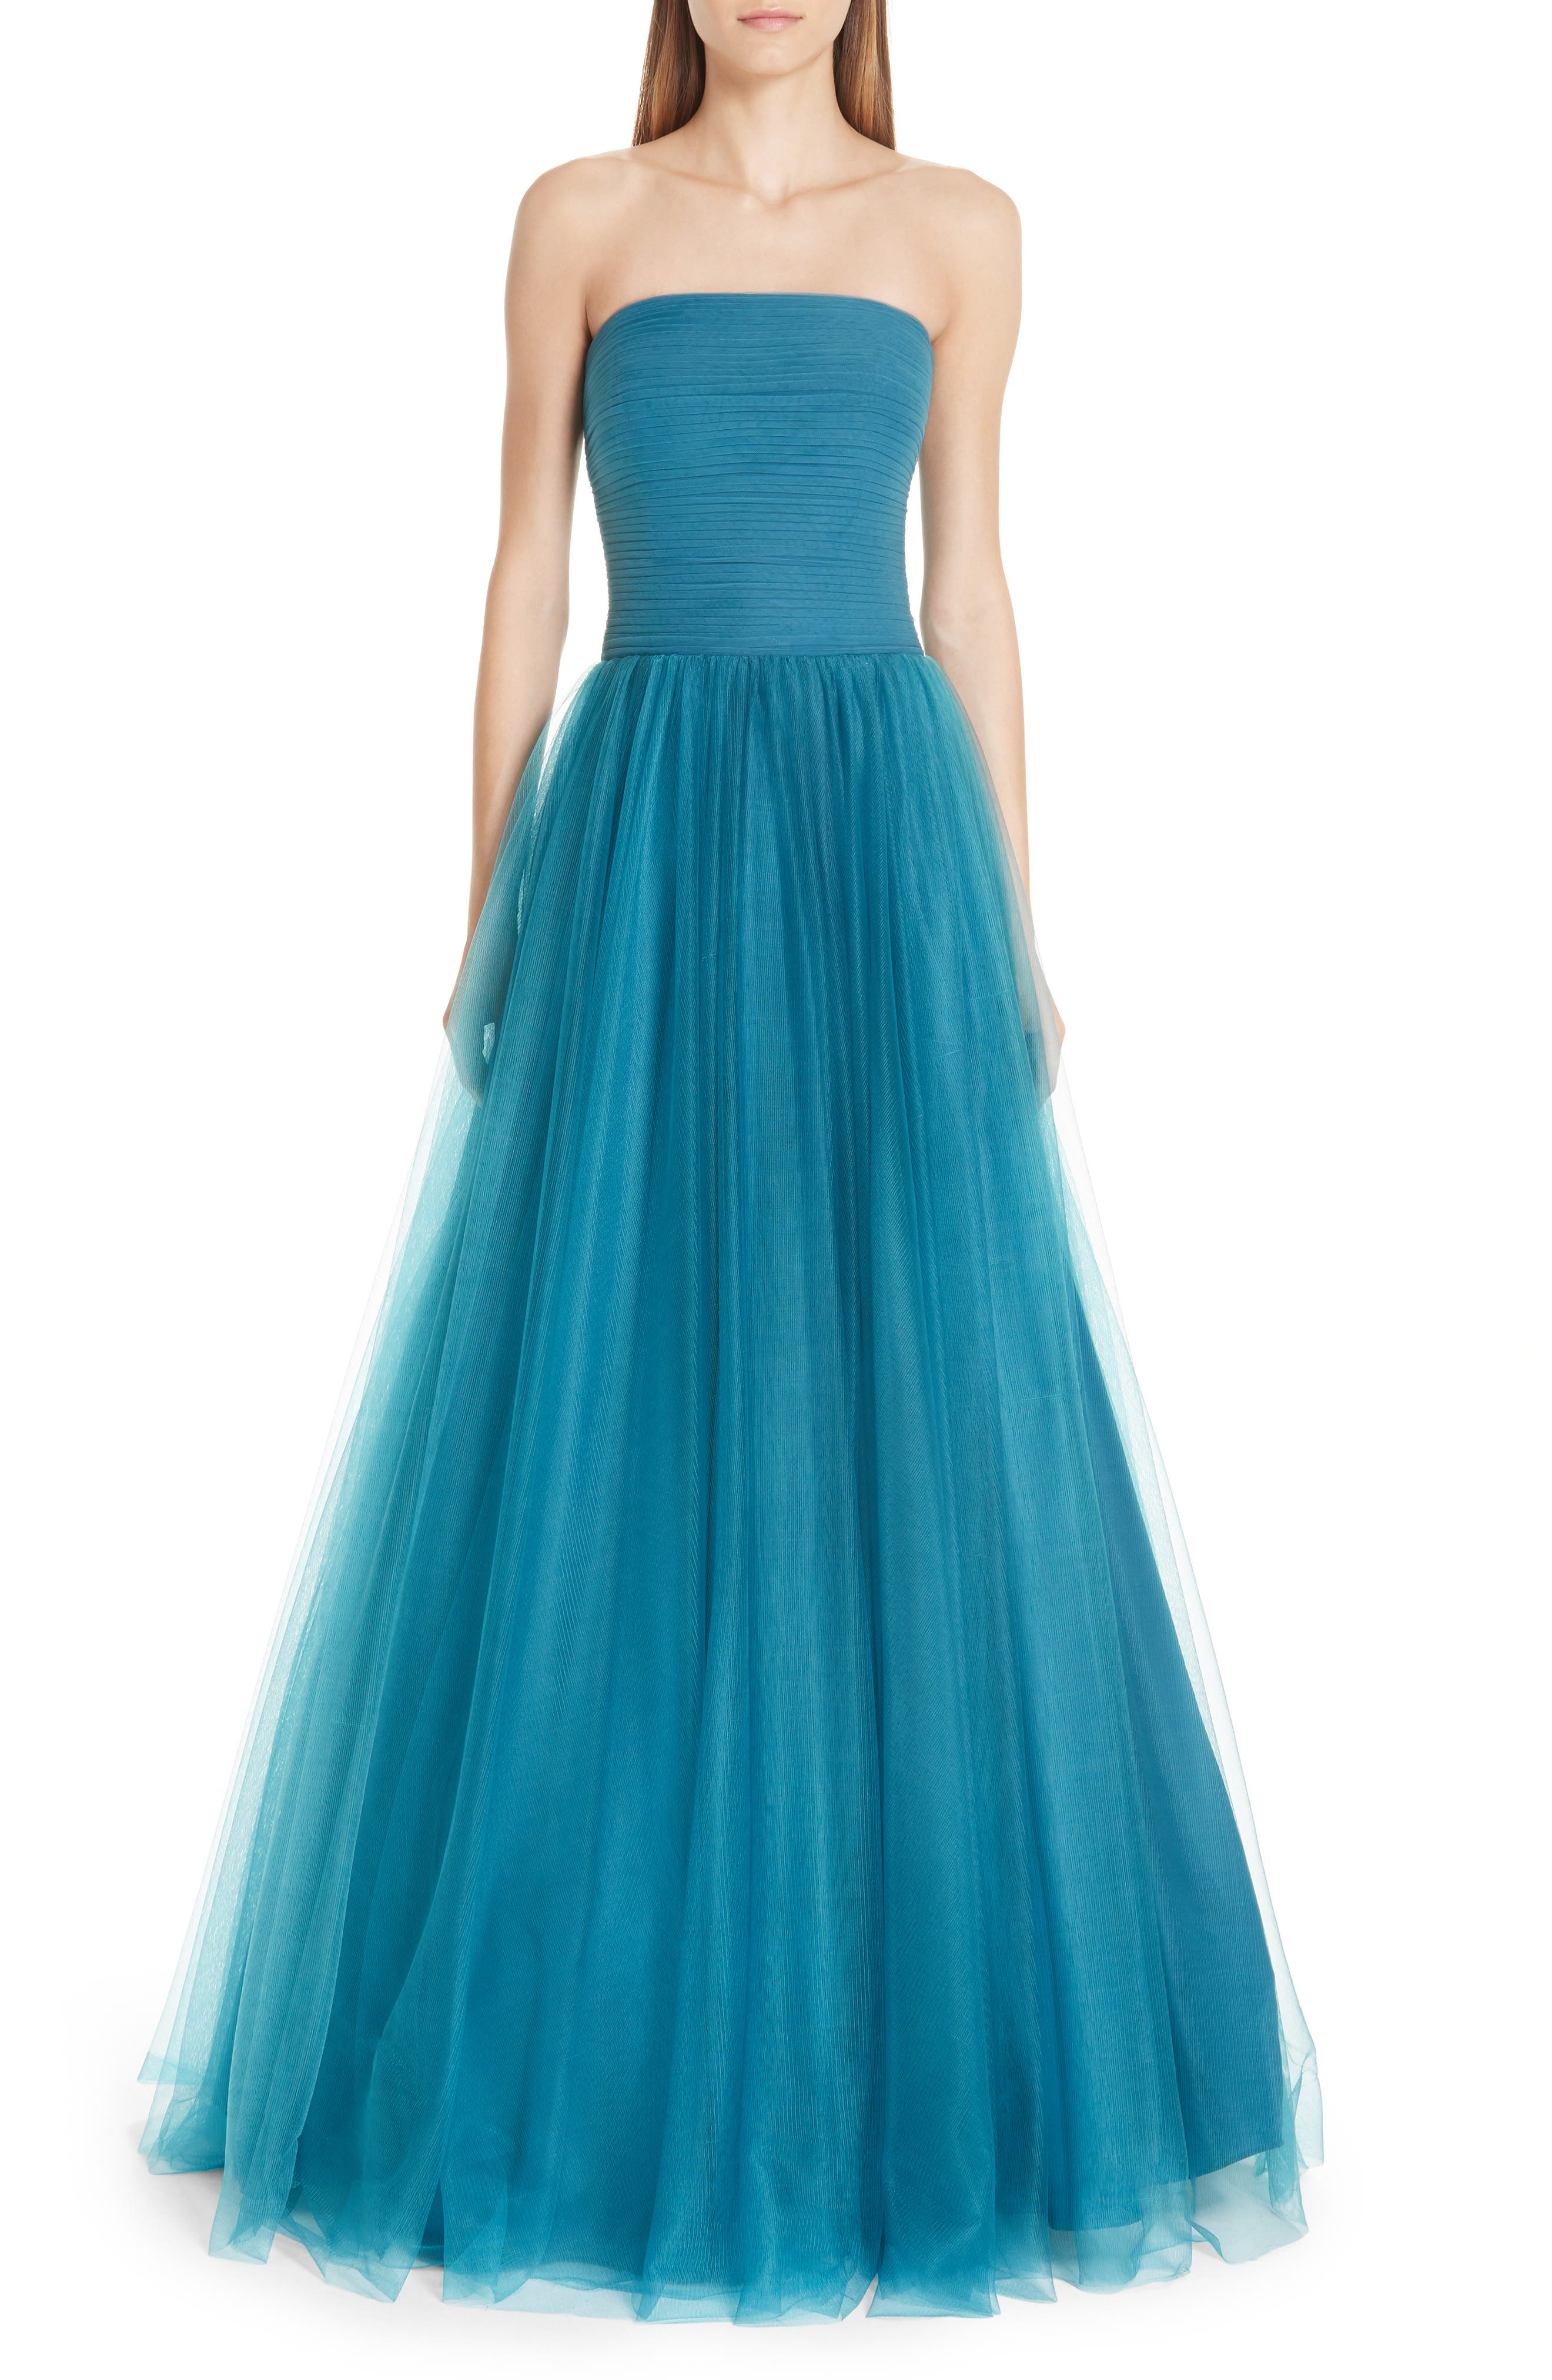 BADGLEY & MISCHKA Collection Strapless Tulle Ballgown in Peacock